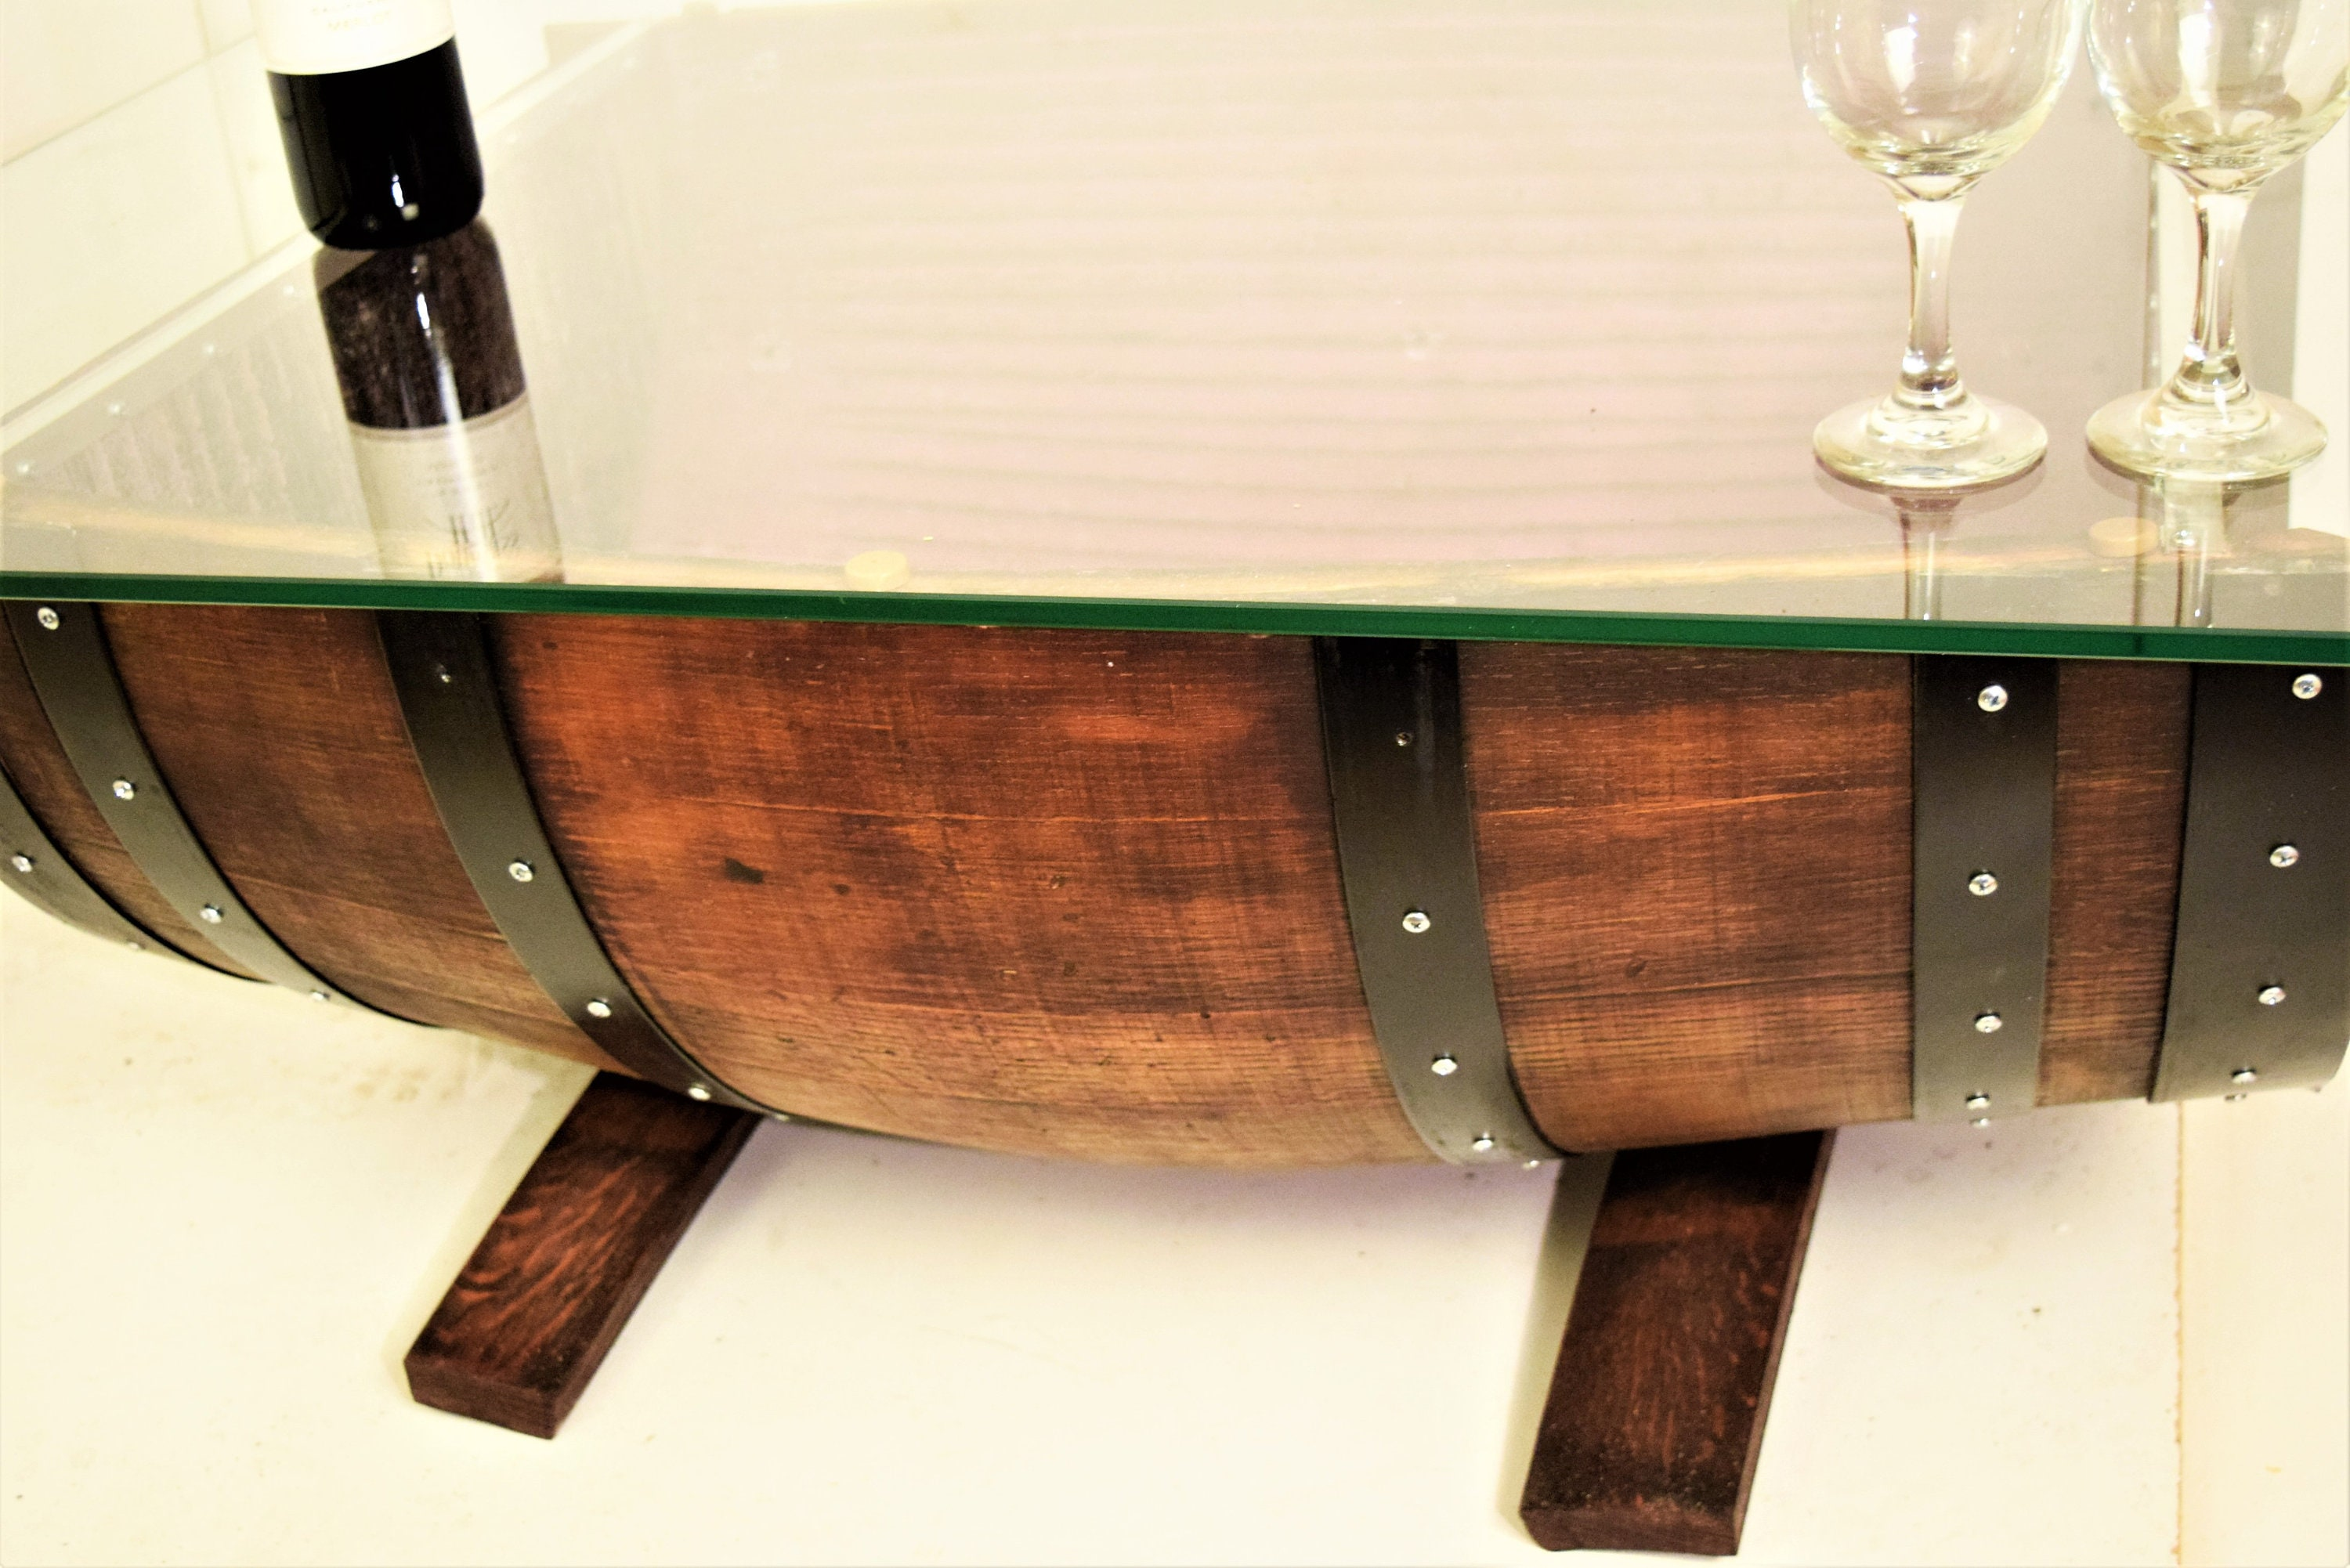 Incredible Half Wine Barrel Coffee Table And Glass Top With The Remainder Of The Barrel In Reverse Position Includes 3 Pendant Hanging Lamp 2108R Download Free Architecture Designs Scobabritishbridgeorg